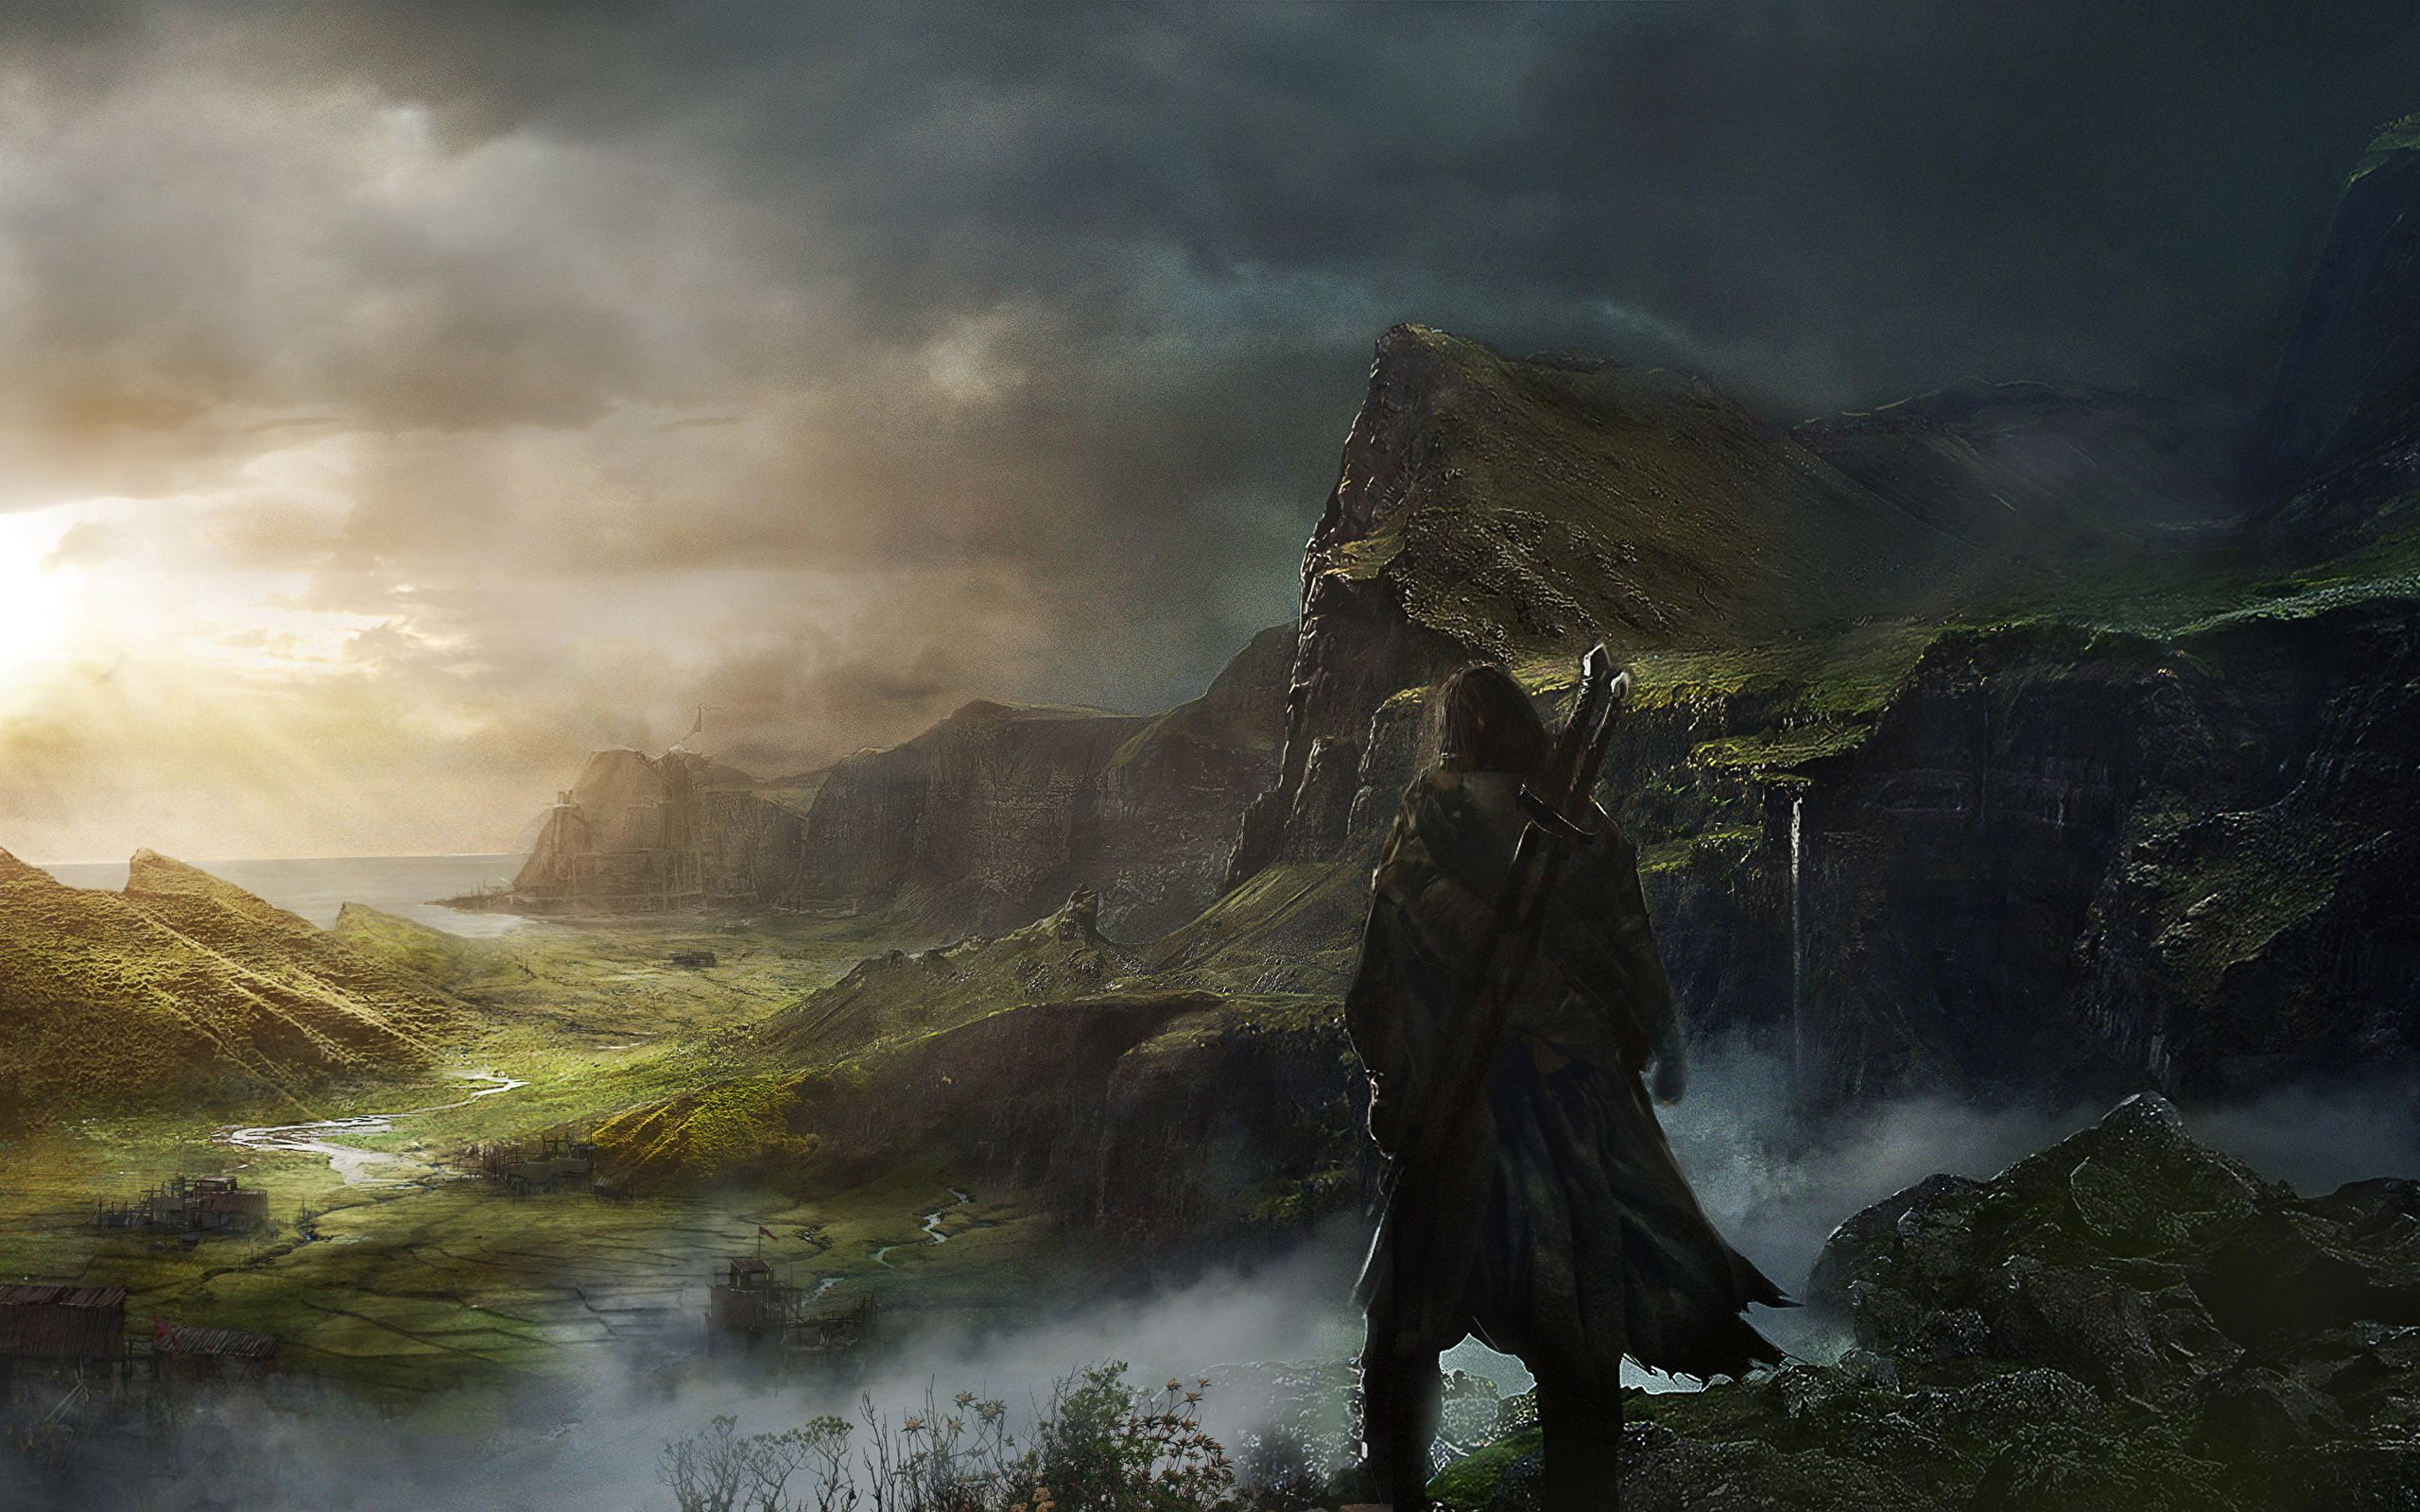 Middle earth wallpapers top free middle earth - Middle earth iphone wallpaper ...